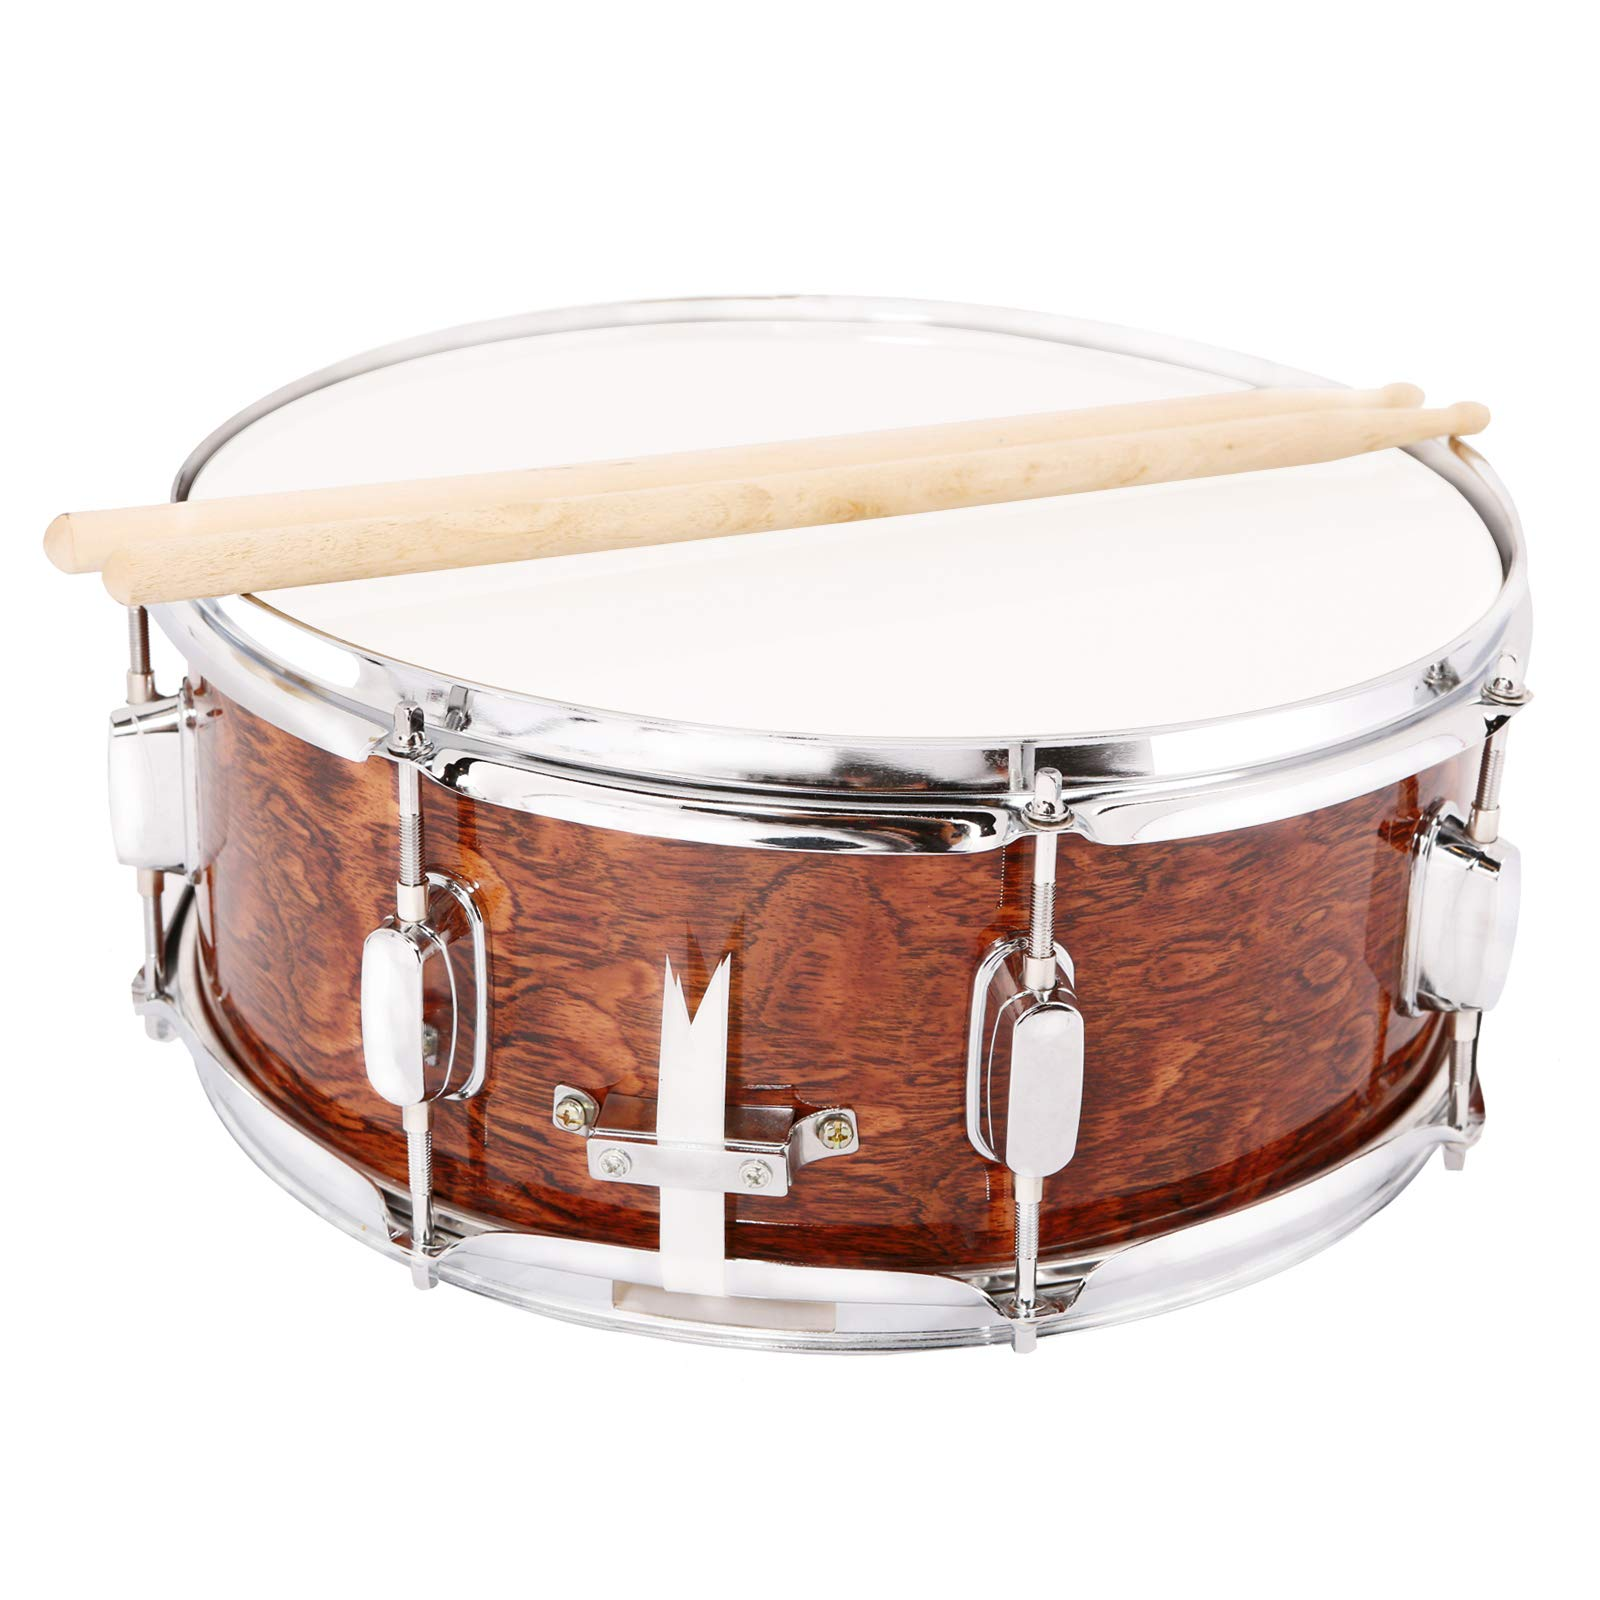 LAGRIMA Student Beginner Snare Drum W/Drum Key, Drumsticks and Strap|14x5.5 inch|Real Wood Shell|8 Metal Tuning Lugs by LAGRIMA (Image #2)